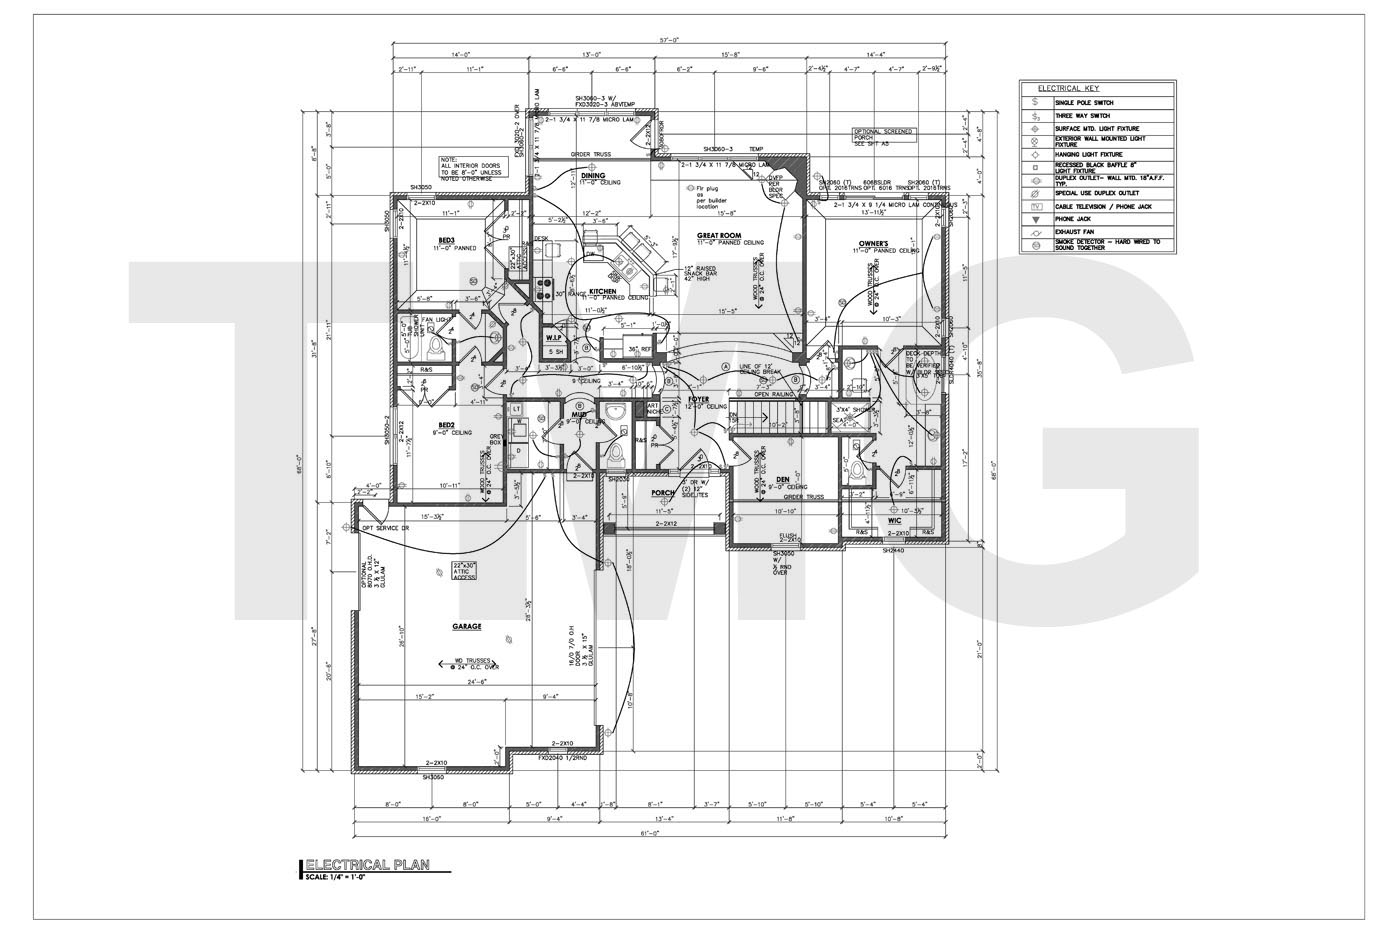 House plans drafting the magnum group tmg india House plan sample